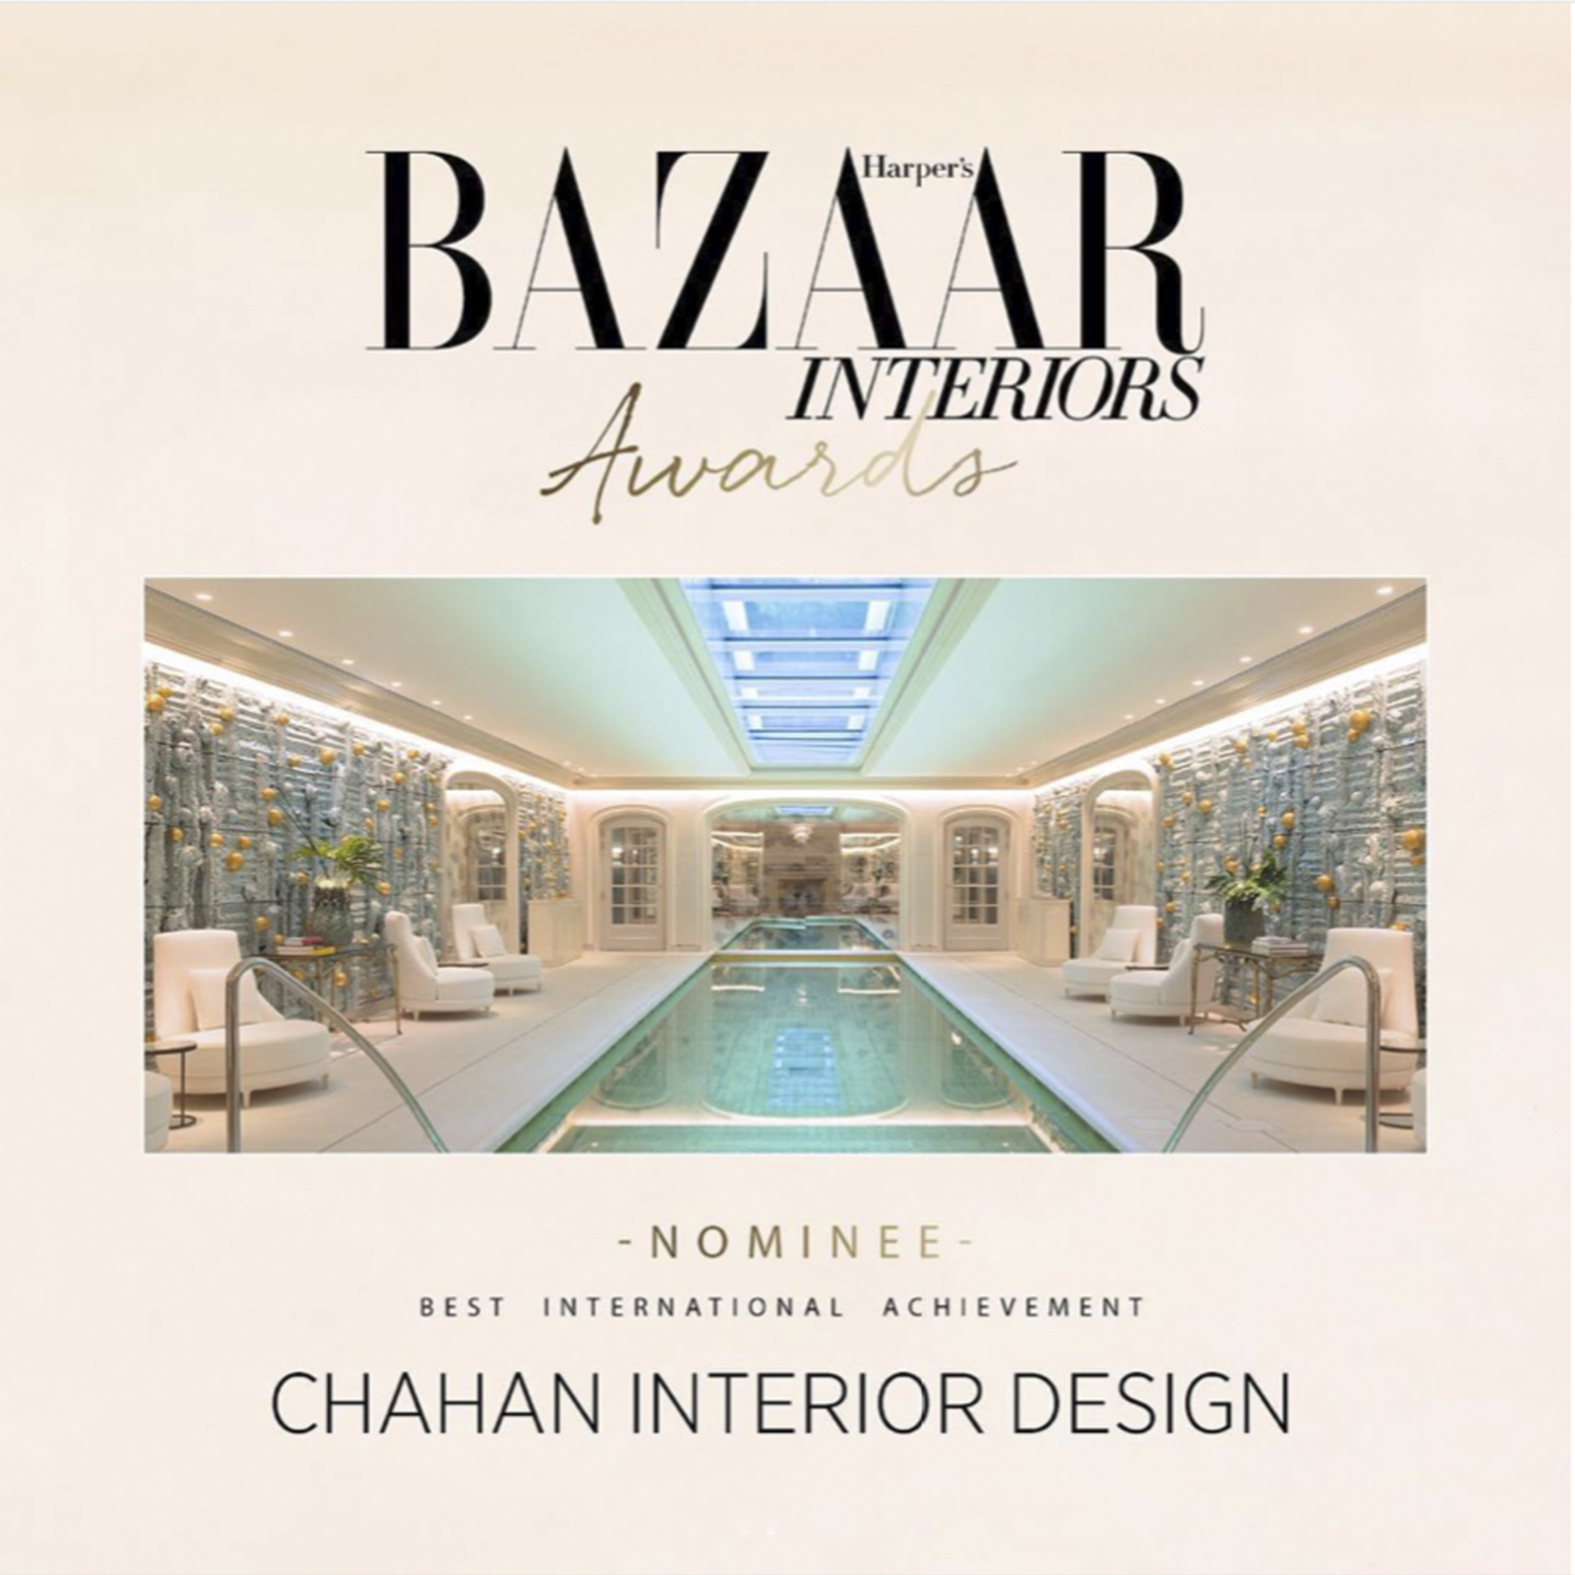 Other Harpers Bazaar Interiors Awards nominees